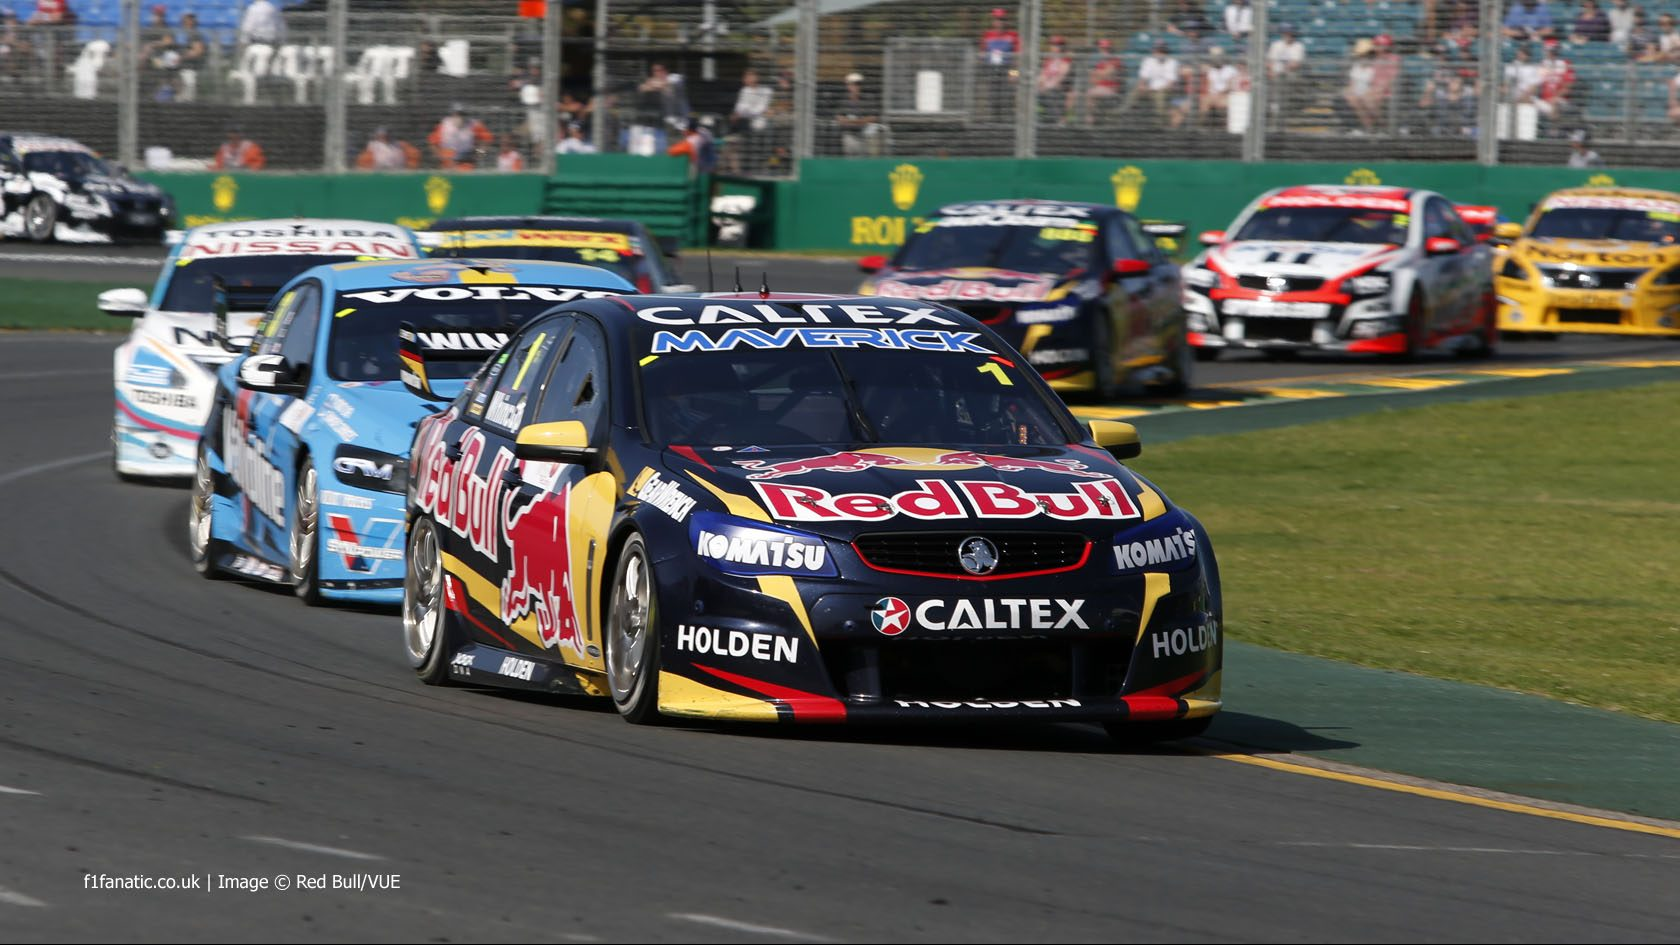 Jamie Whincup, Holden, Melbourne, Australian V8 Supercars, 2014